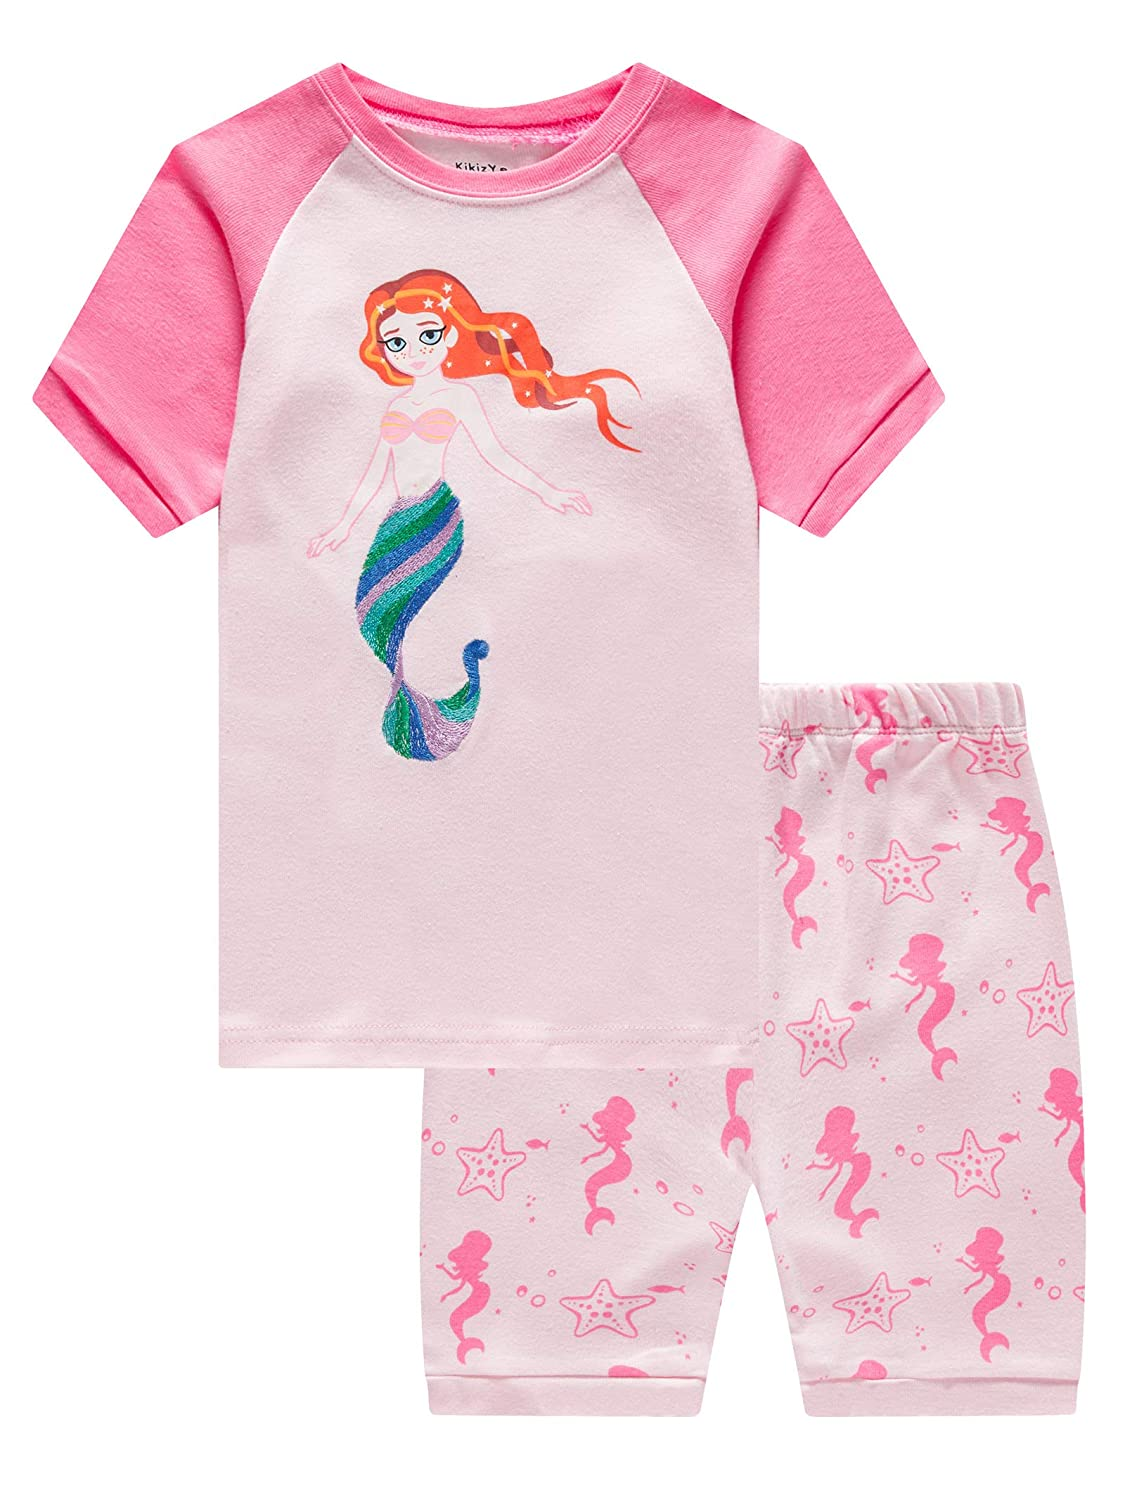 Girls Short Sleeve Pajamas Set Kids Short Pjs Sets Summer Cotton Sleepwears